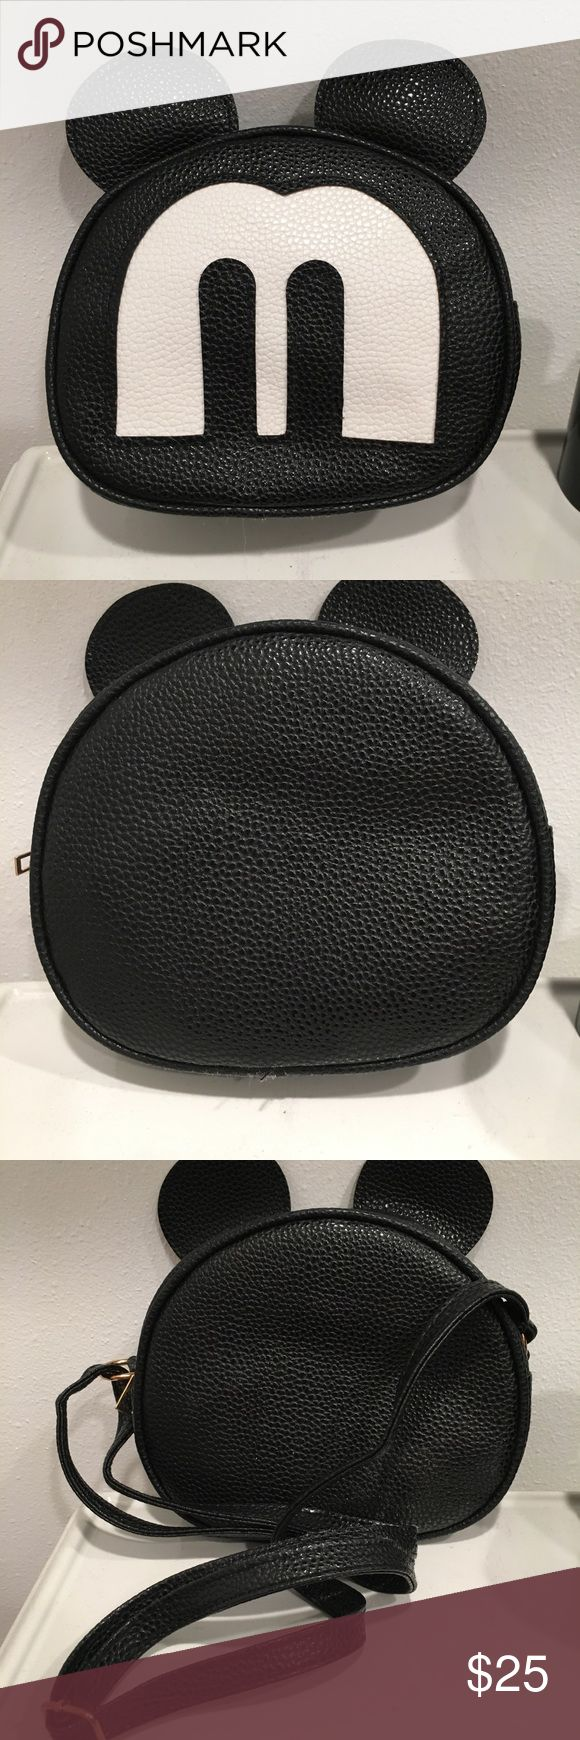 """New Mickey Mouse Crossbody Bag Brand New Never Carried. Black Man Made Leather and PVC Trim. Adjustable Strap Drop 12"""" to 28"""". Bag is 6"""" across and 3"""" deep. Fits an IPhone 6s.  Imported from China. Bags Crossbody Bags"""